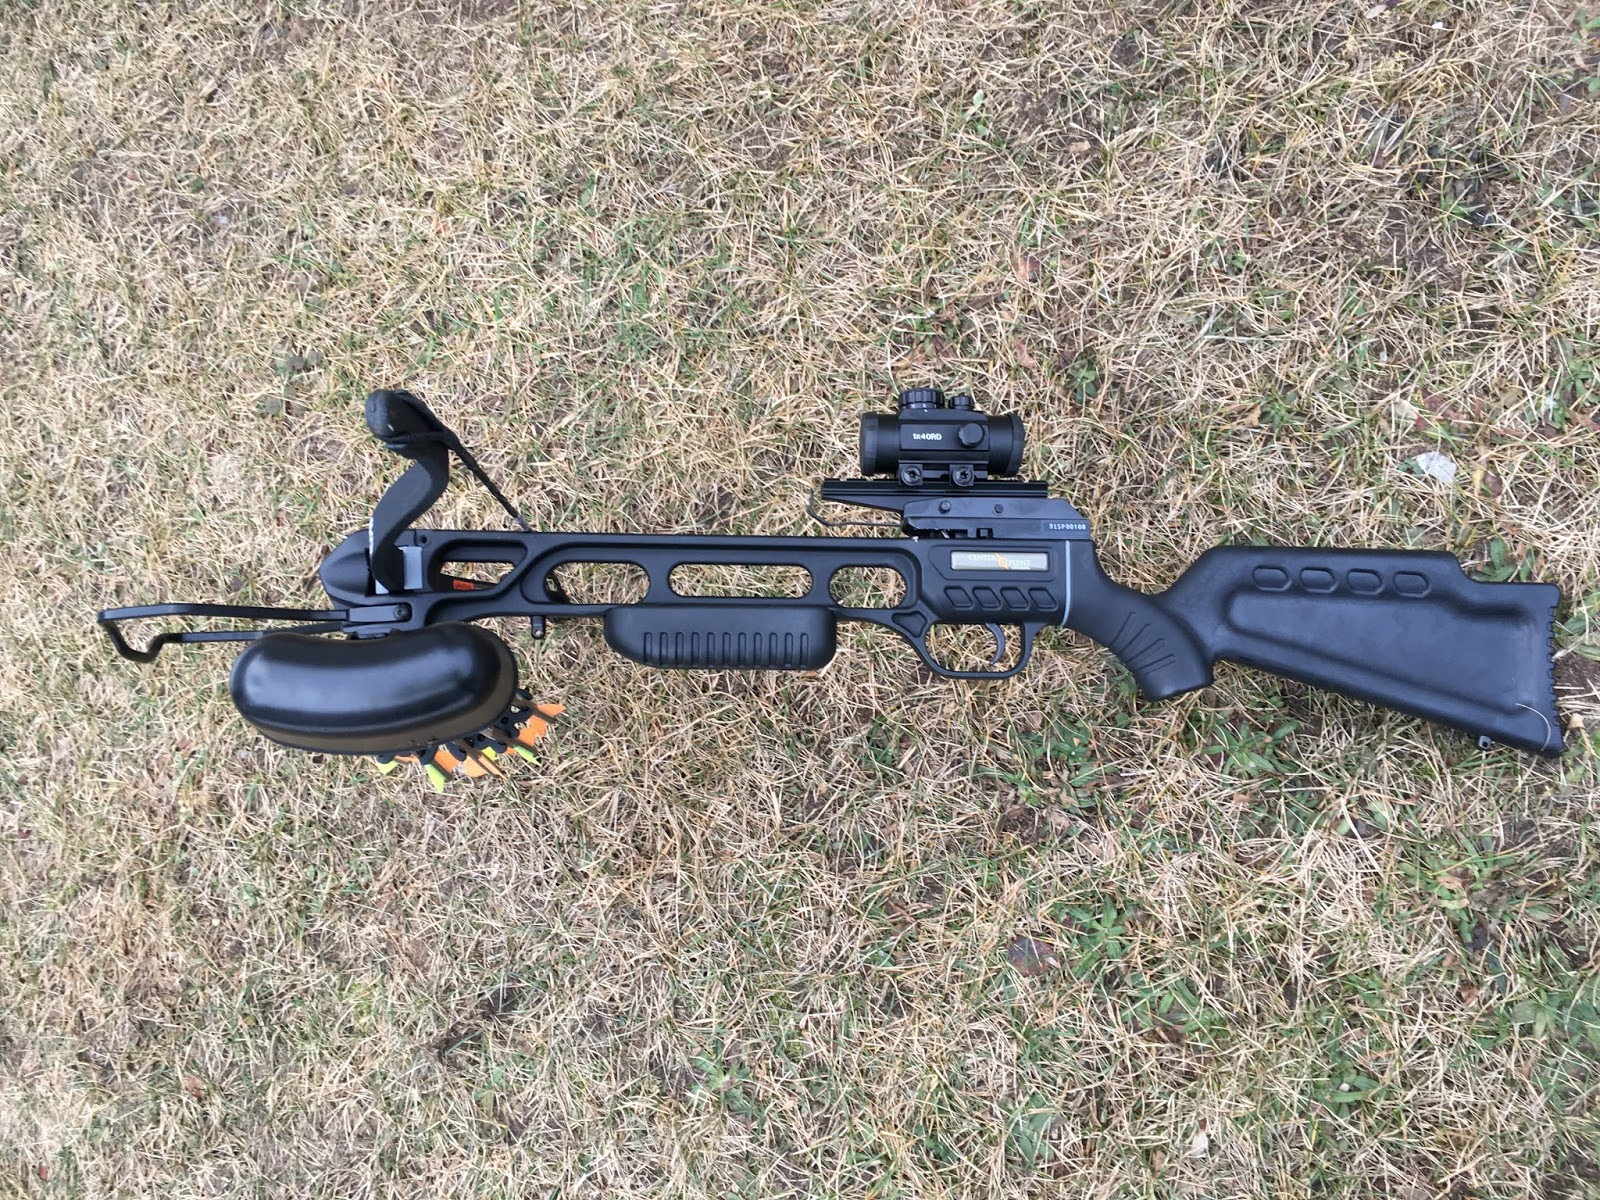 Confessions of a Gear Geek: Center Point XR175 Recurve Crossbow and